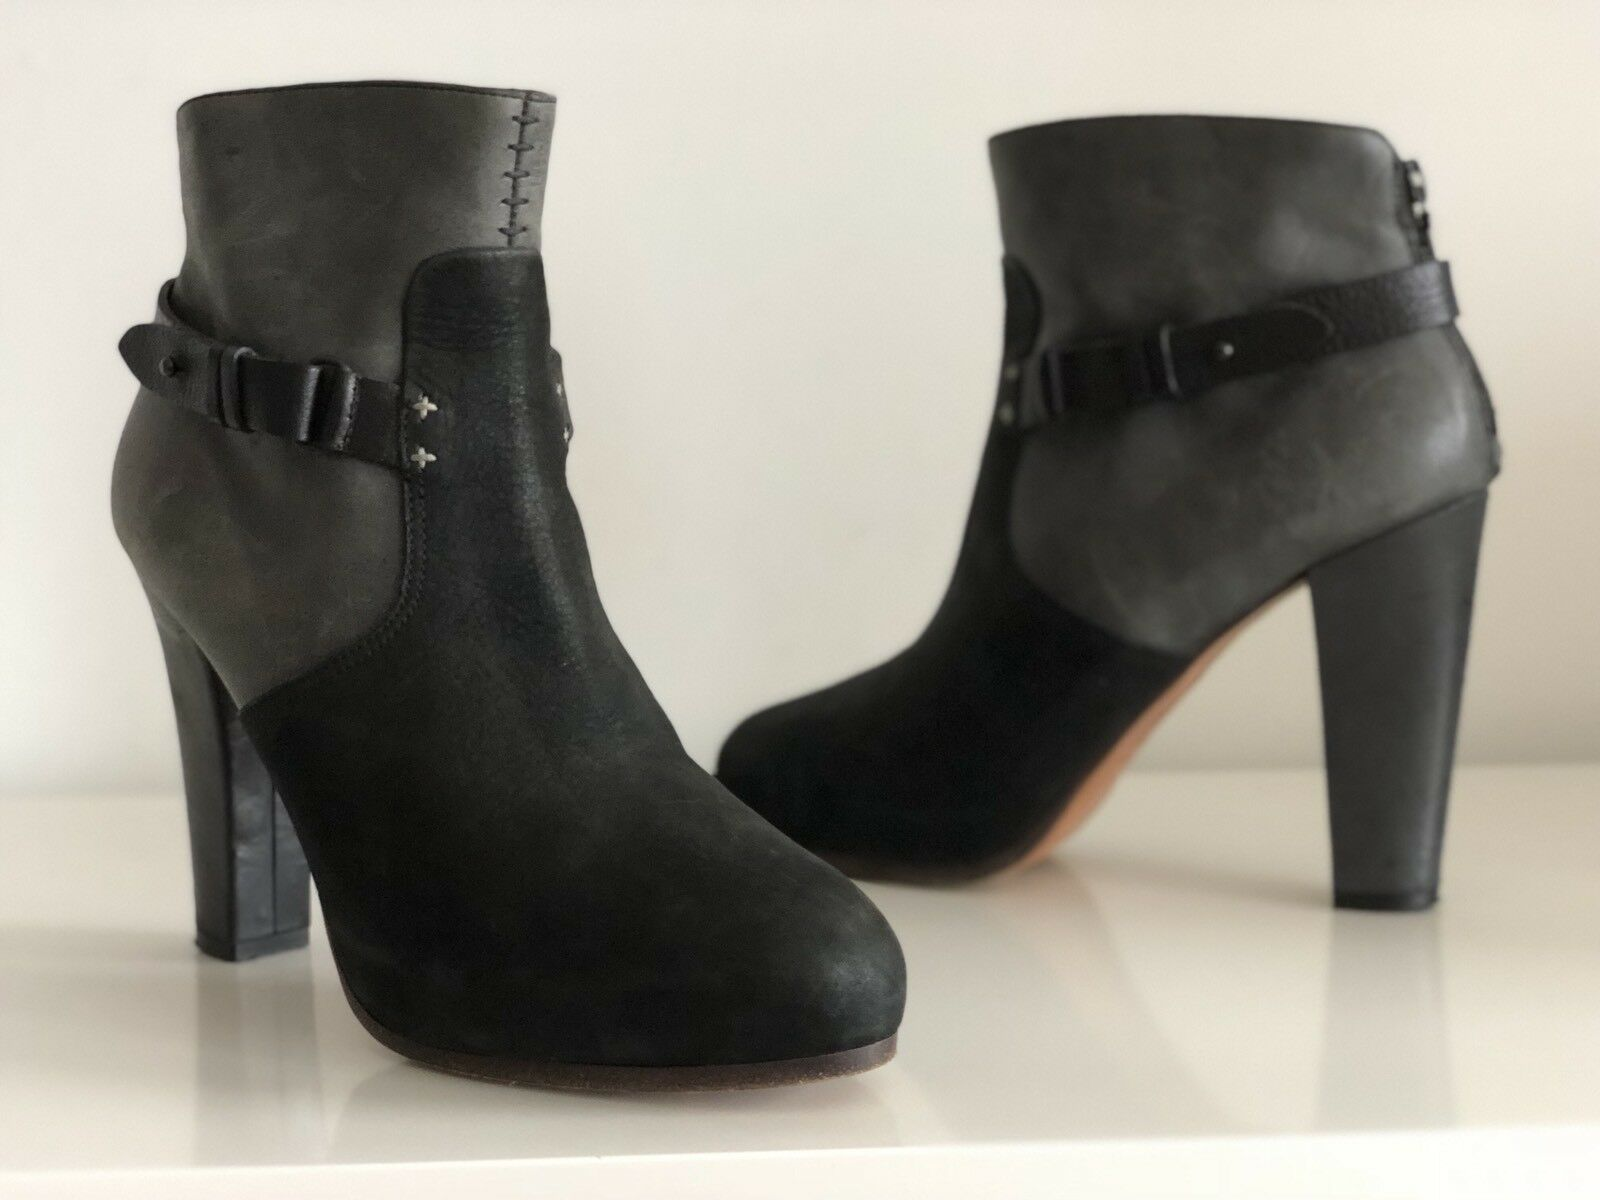 RAG BONE BLACK AND GREY LEATHER ANKLE BOOTS, SIZE 40